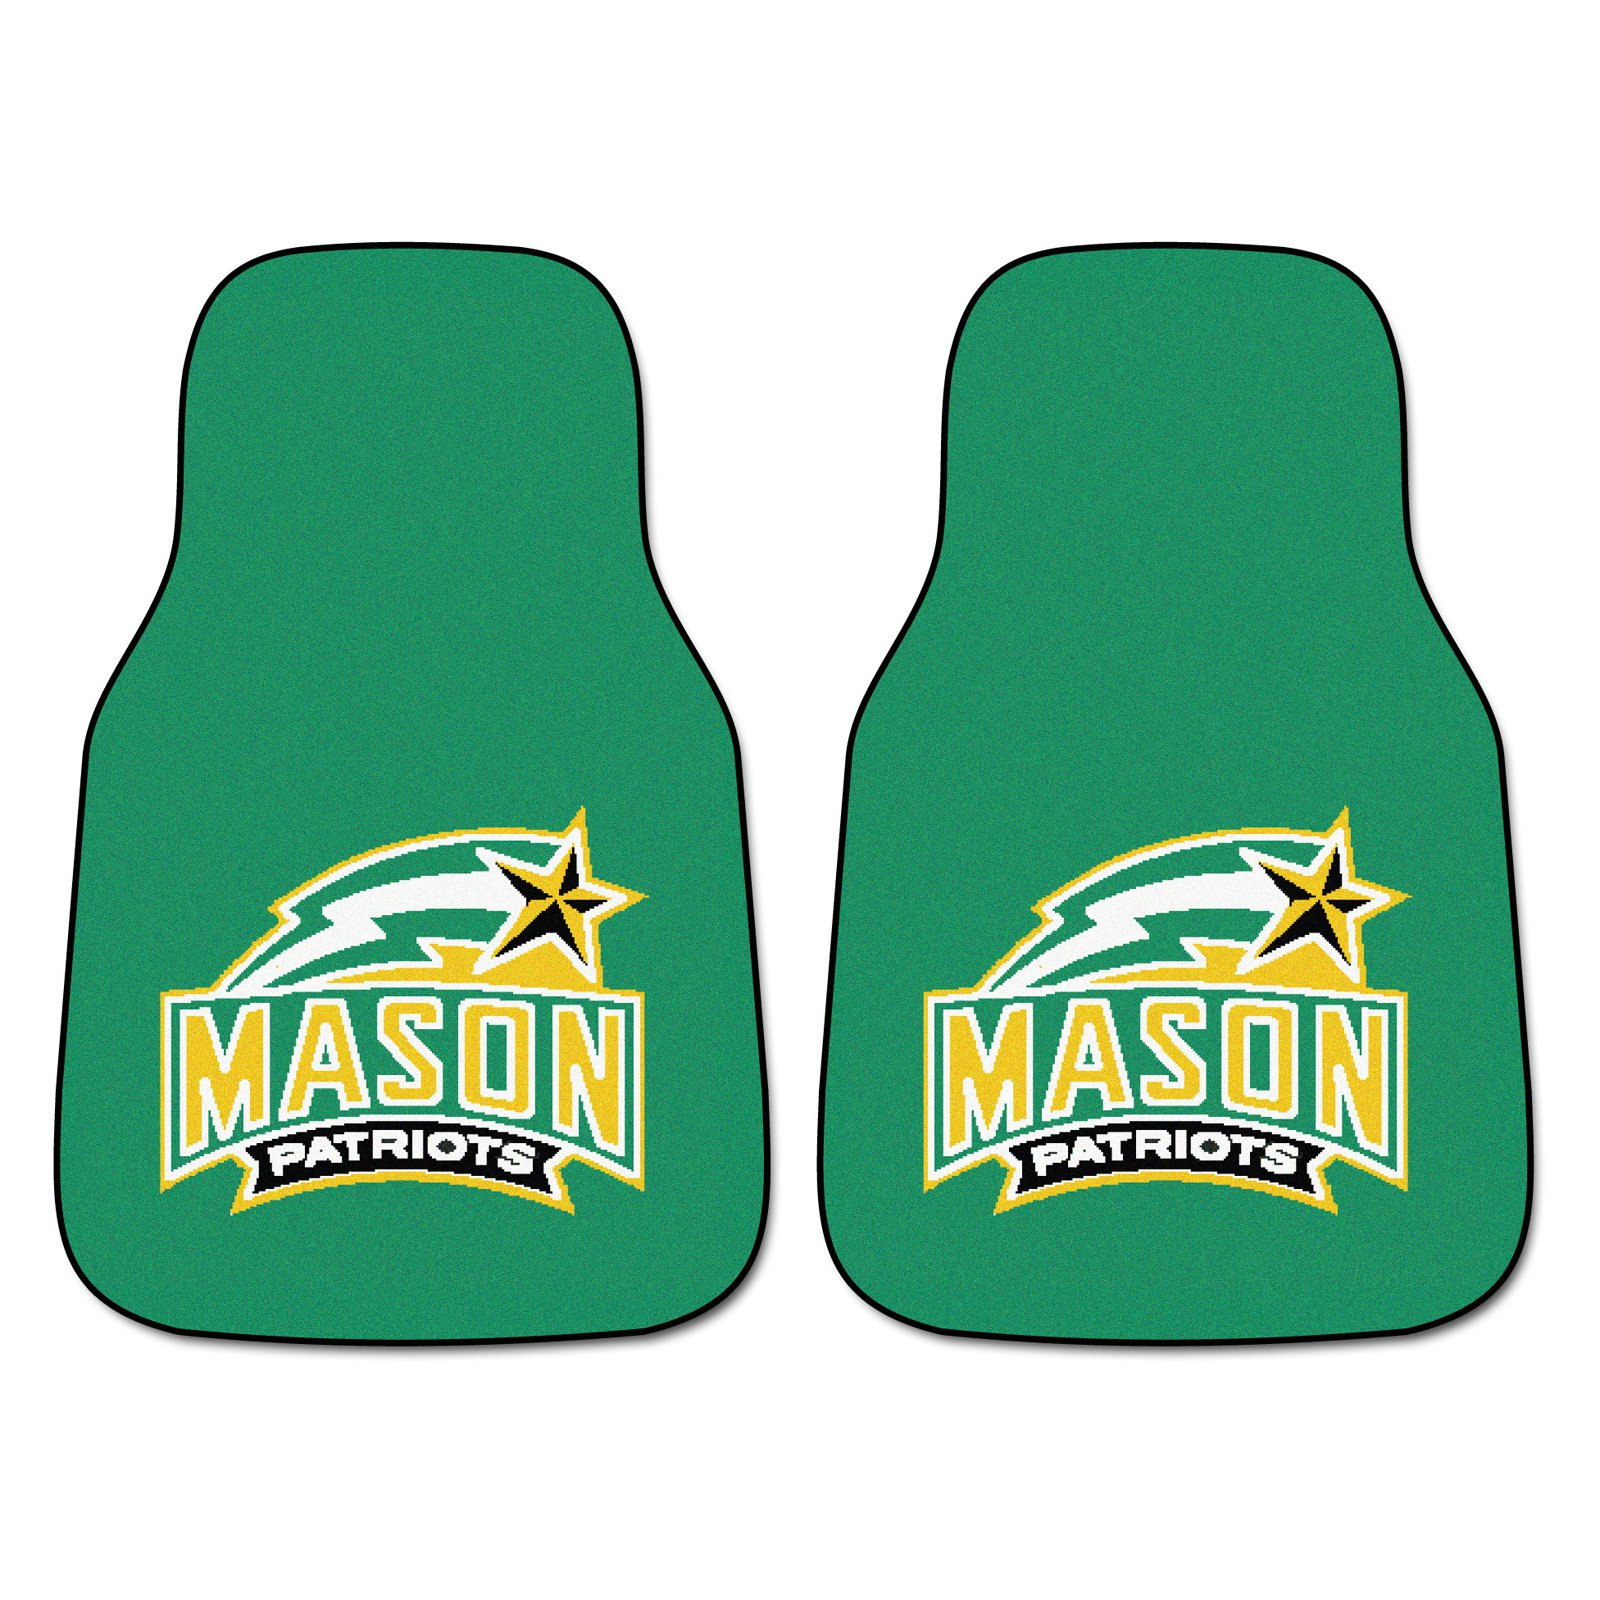 Pair of George Mason University Patriots Car Mats - Yellow and Green